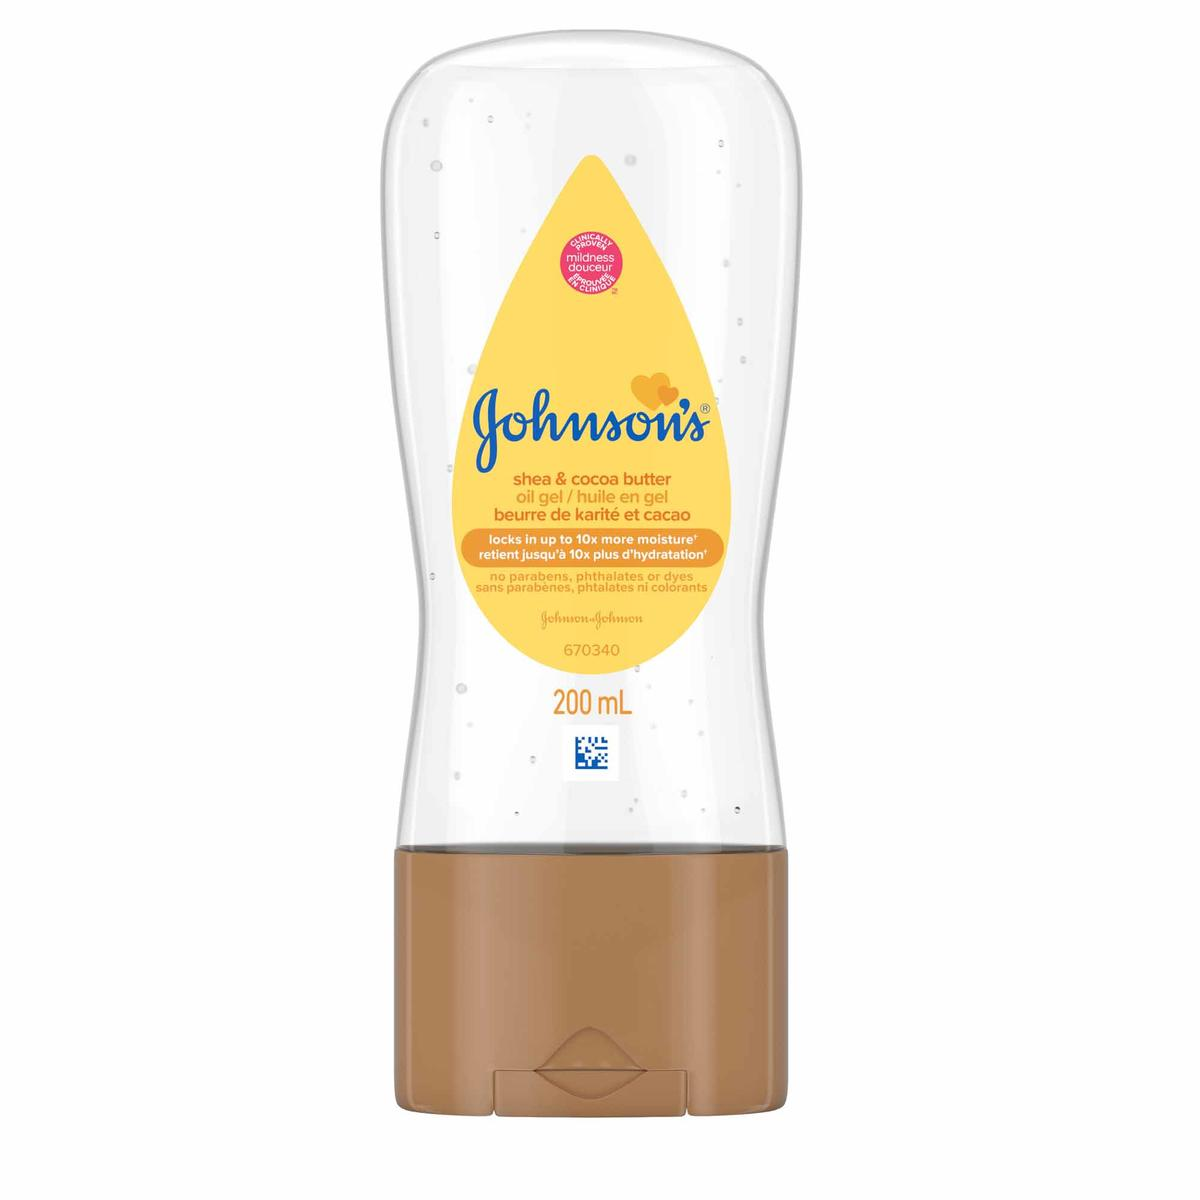 Jonhson's Shea and Cocoa butter body lotion